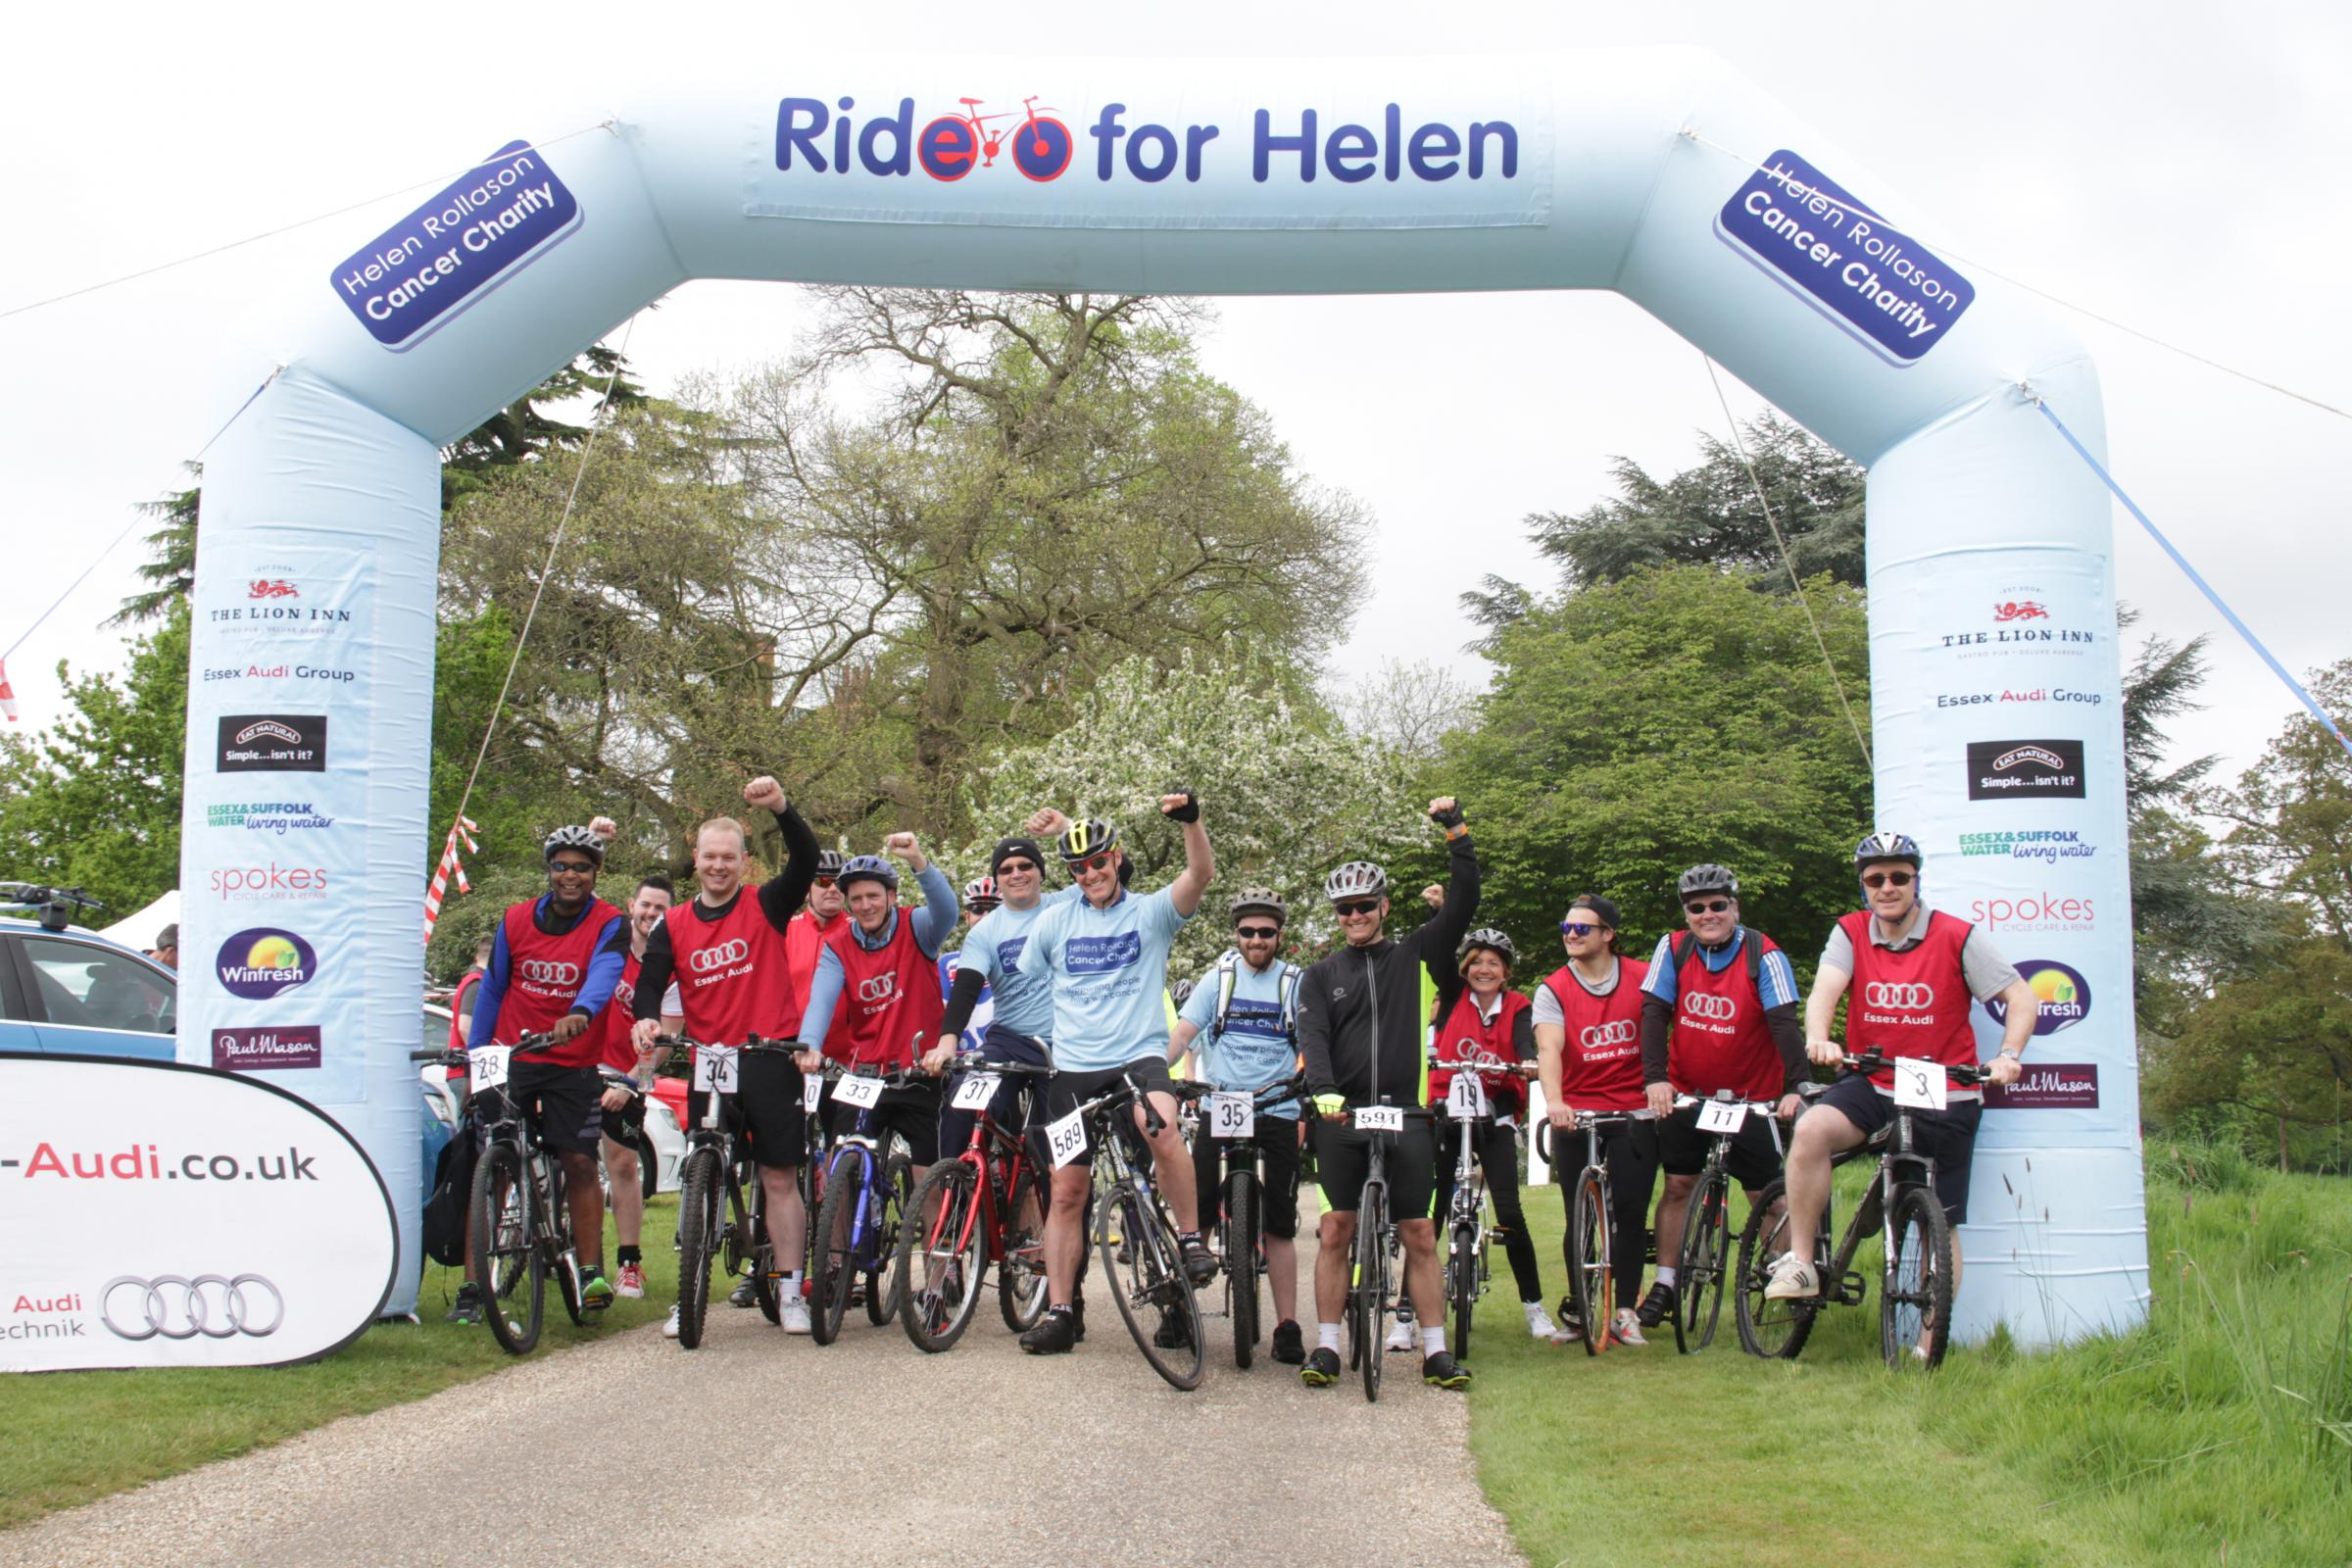 Ride for Helen is back! Saddle up and raise some money for a worthy cause